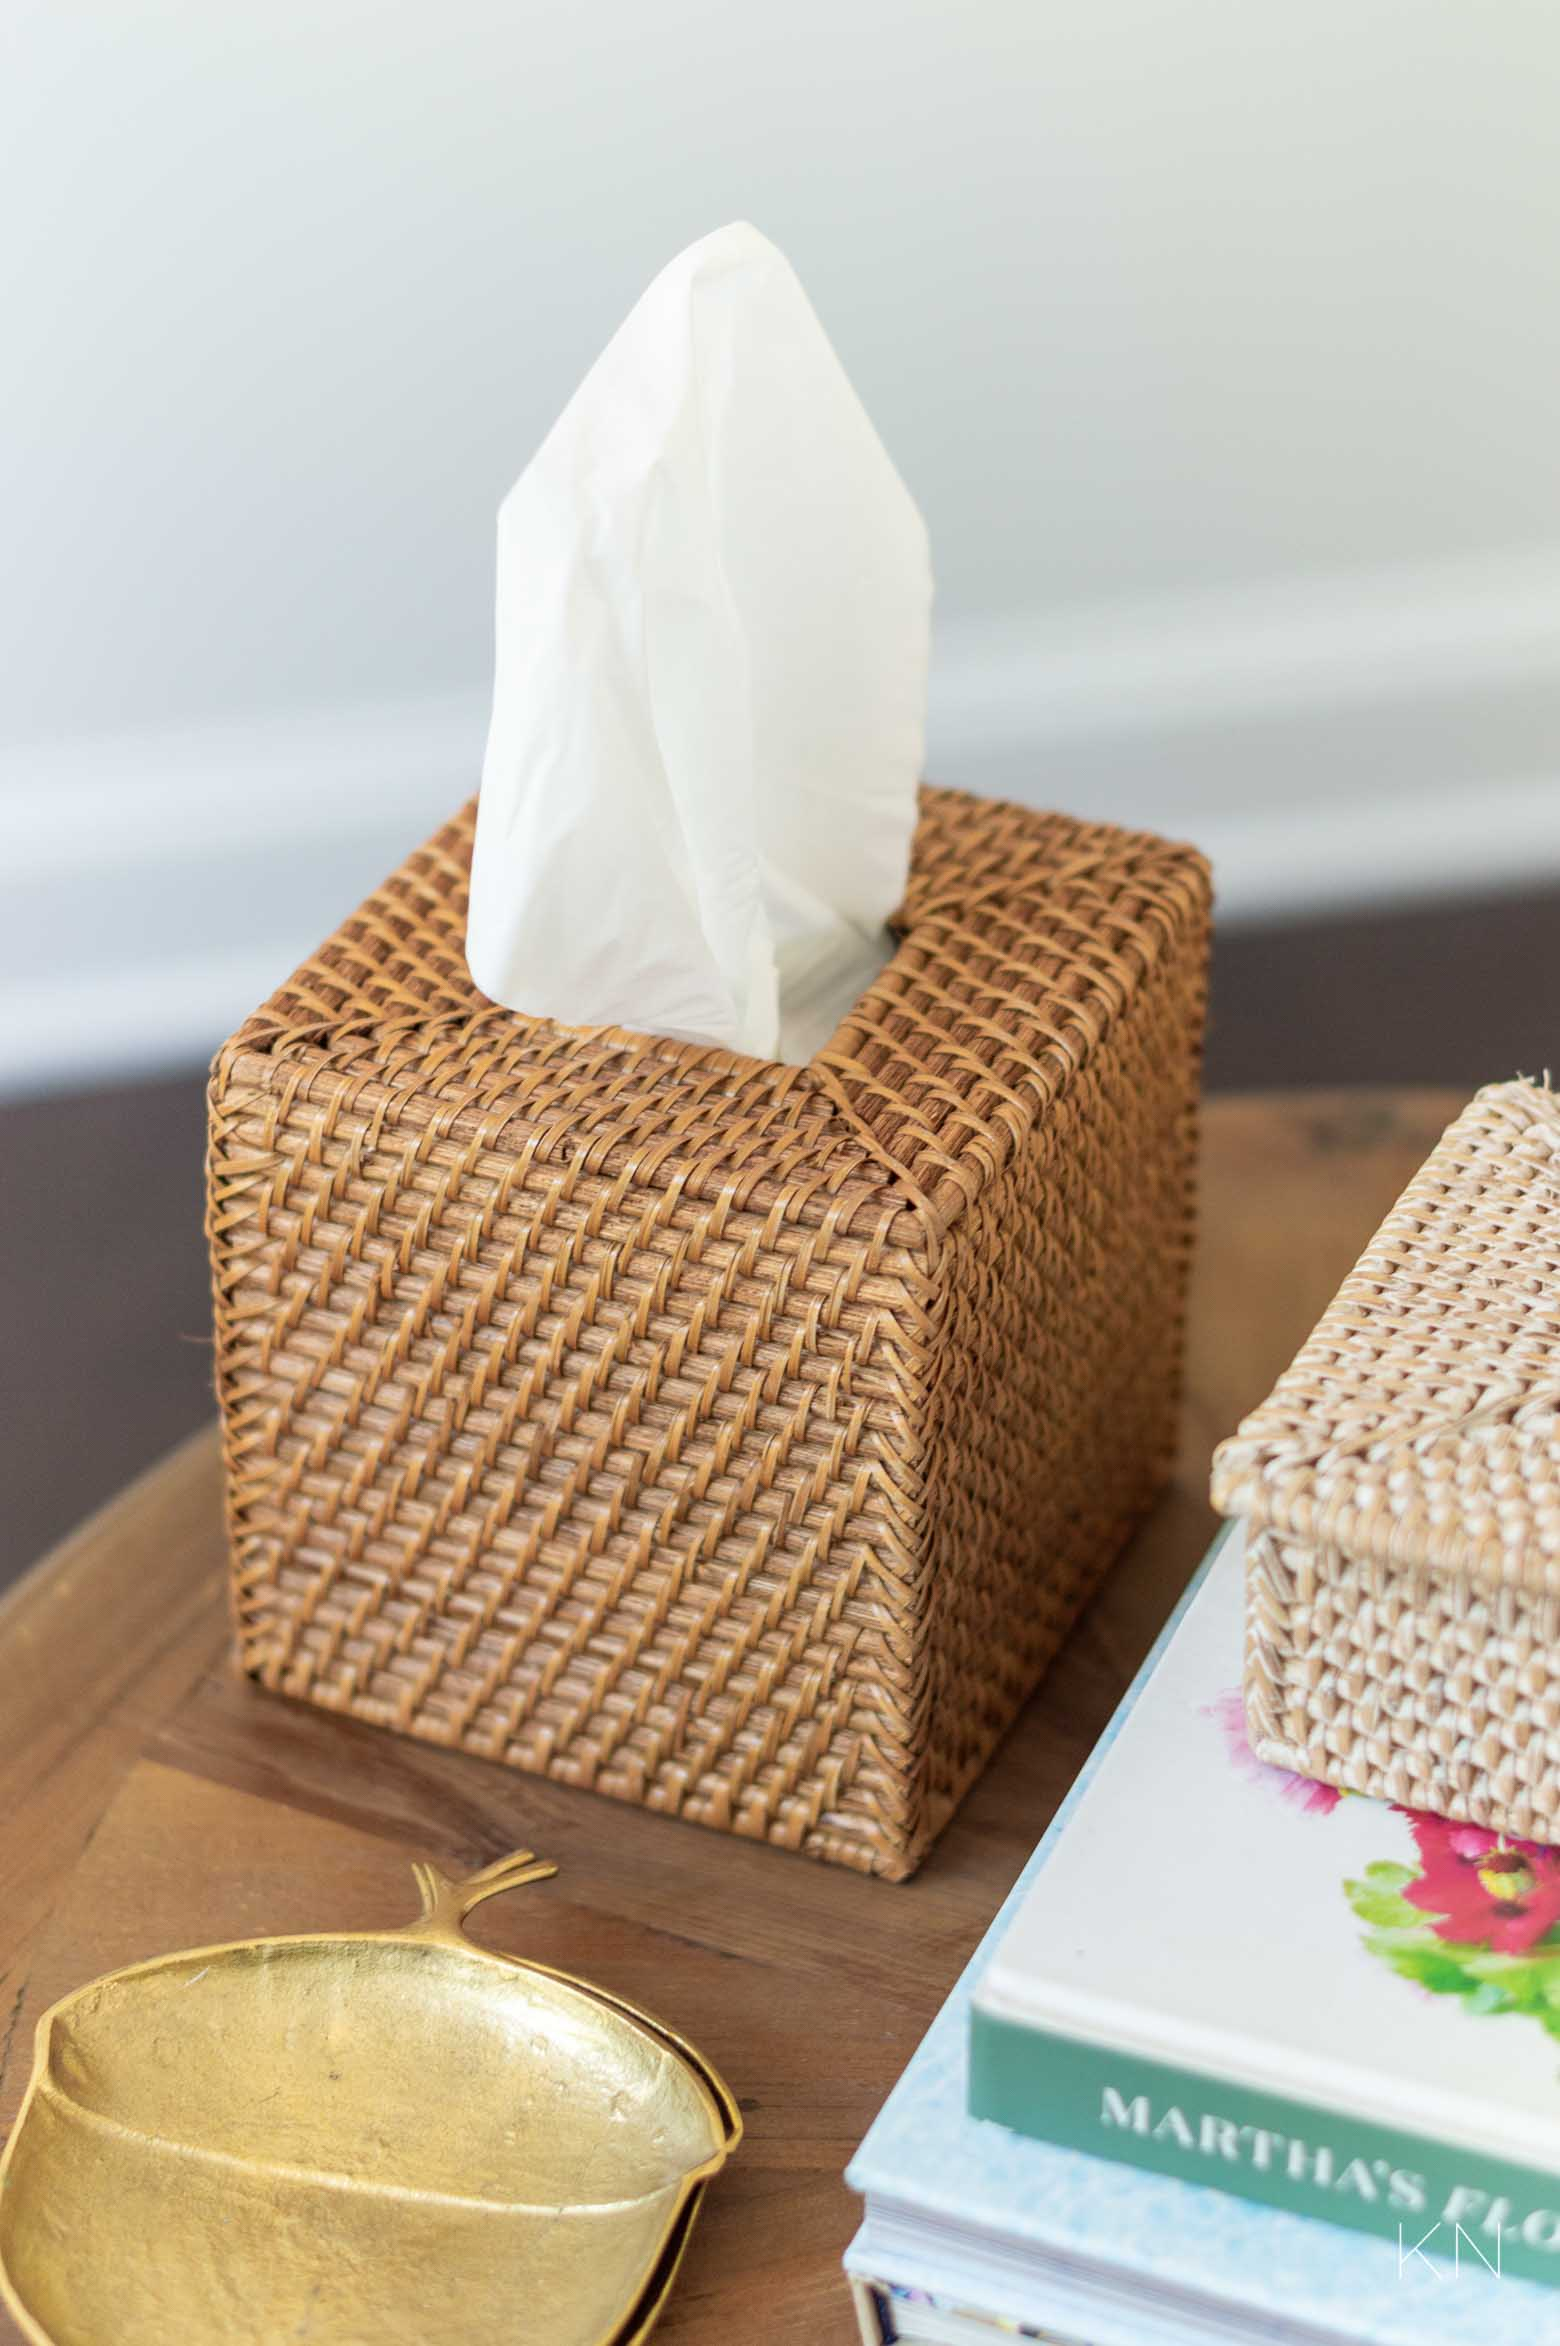 The Amazon Tissue Box I have All Over My House